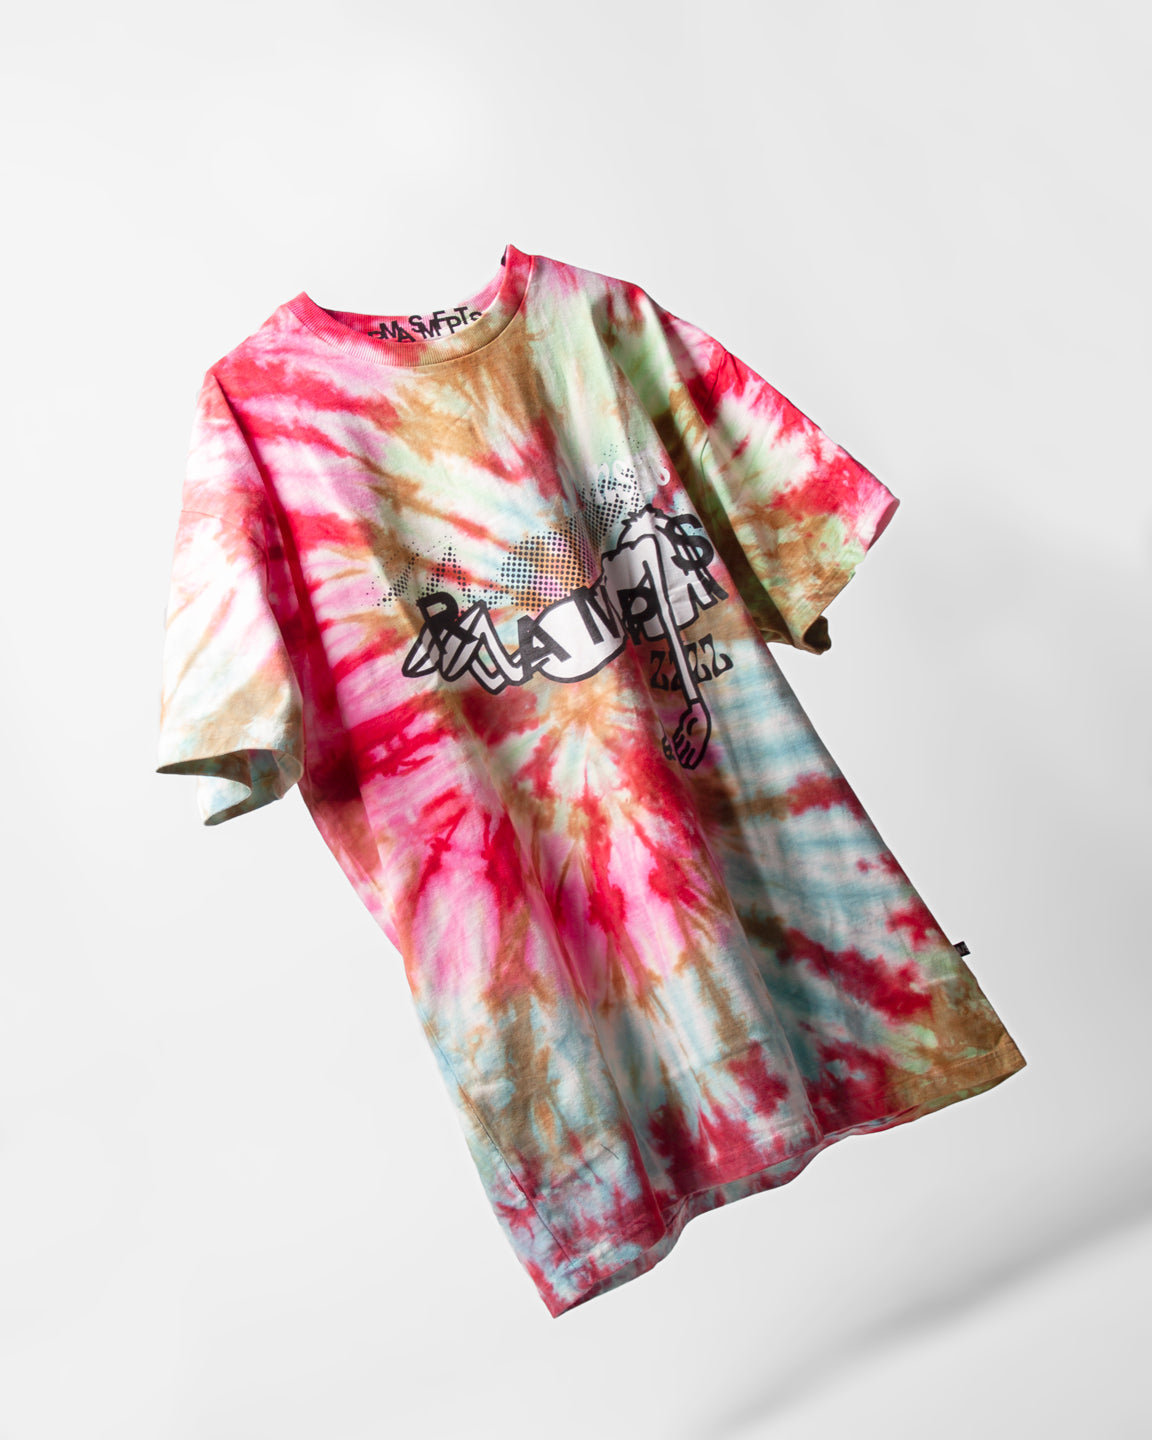 Shop MISFIT Shapes and Tees at Fallenfront nz